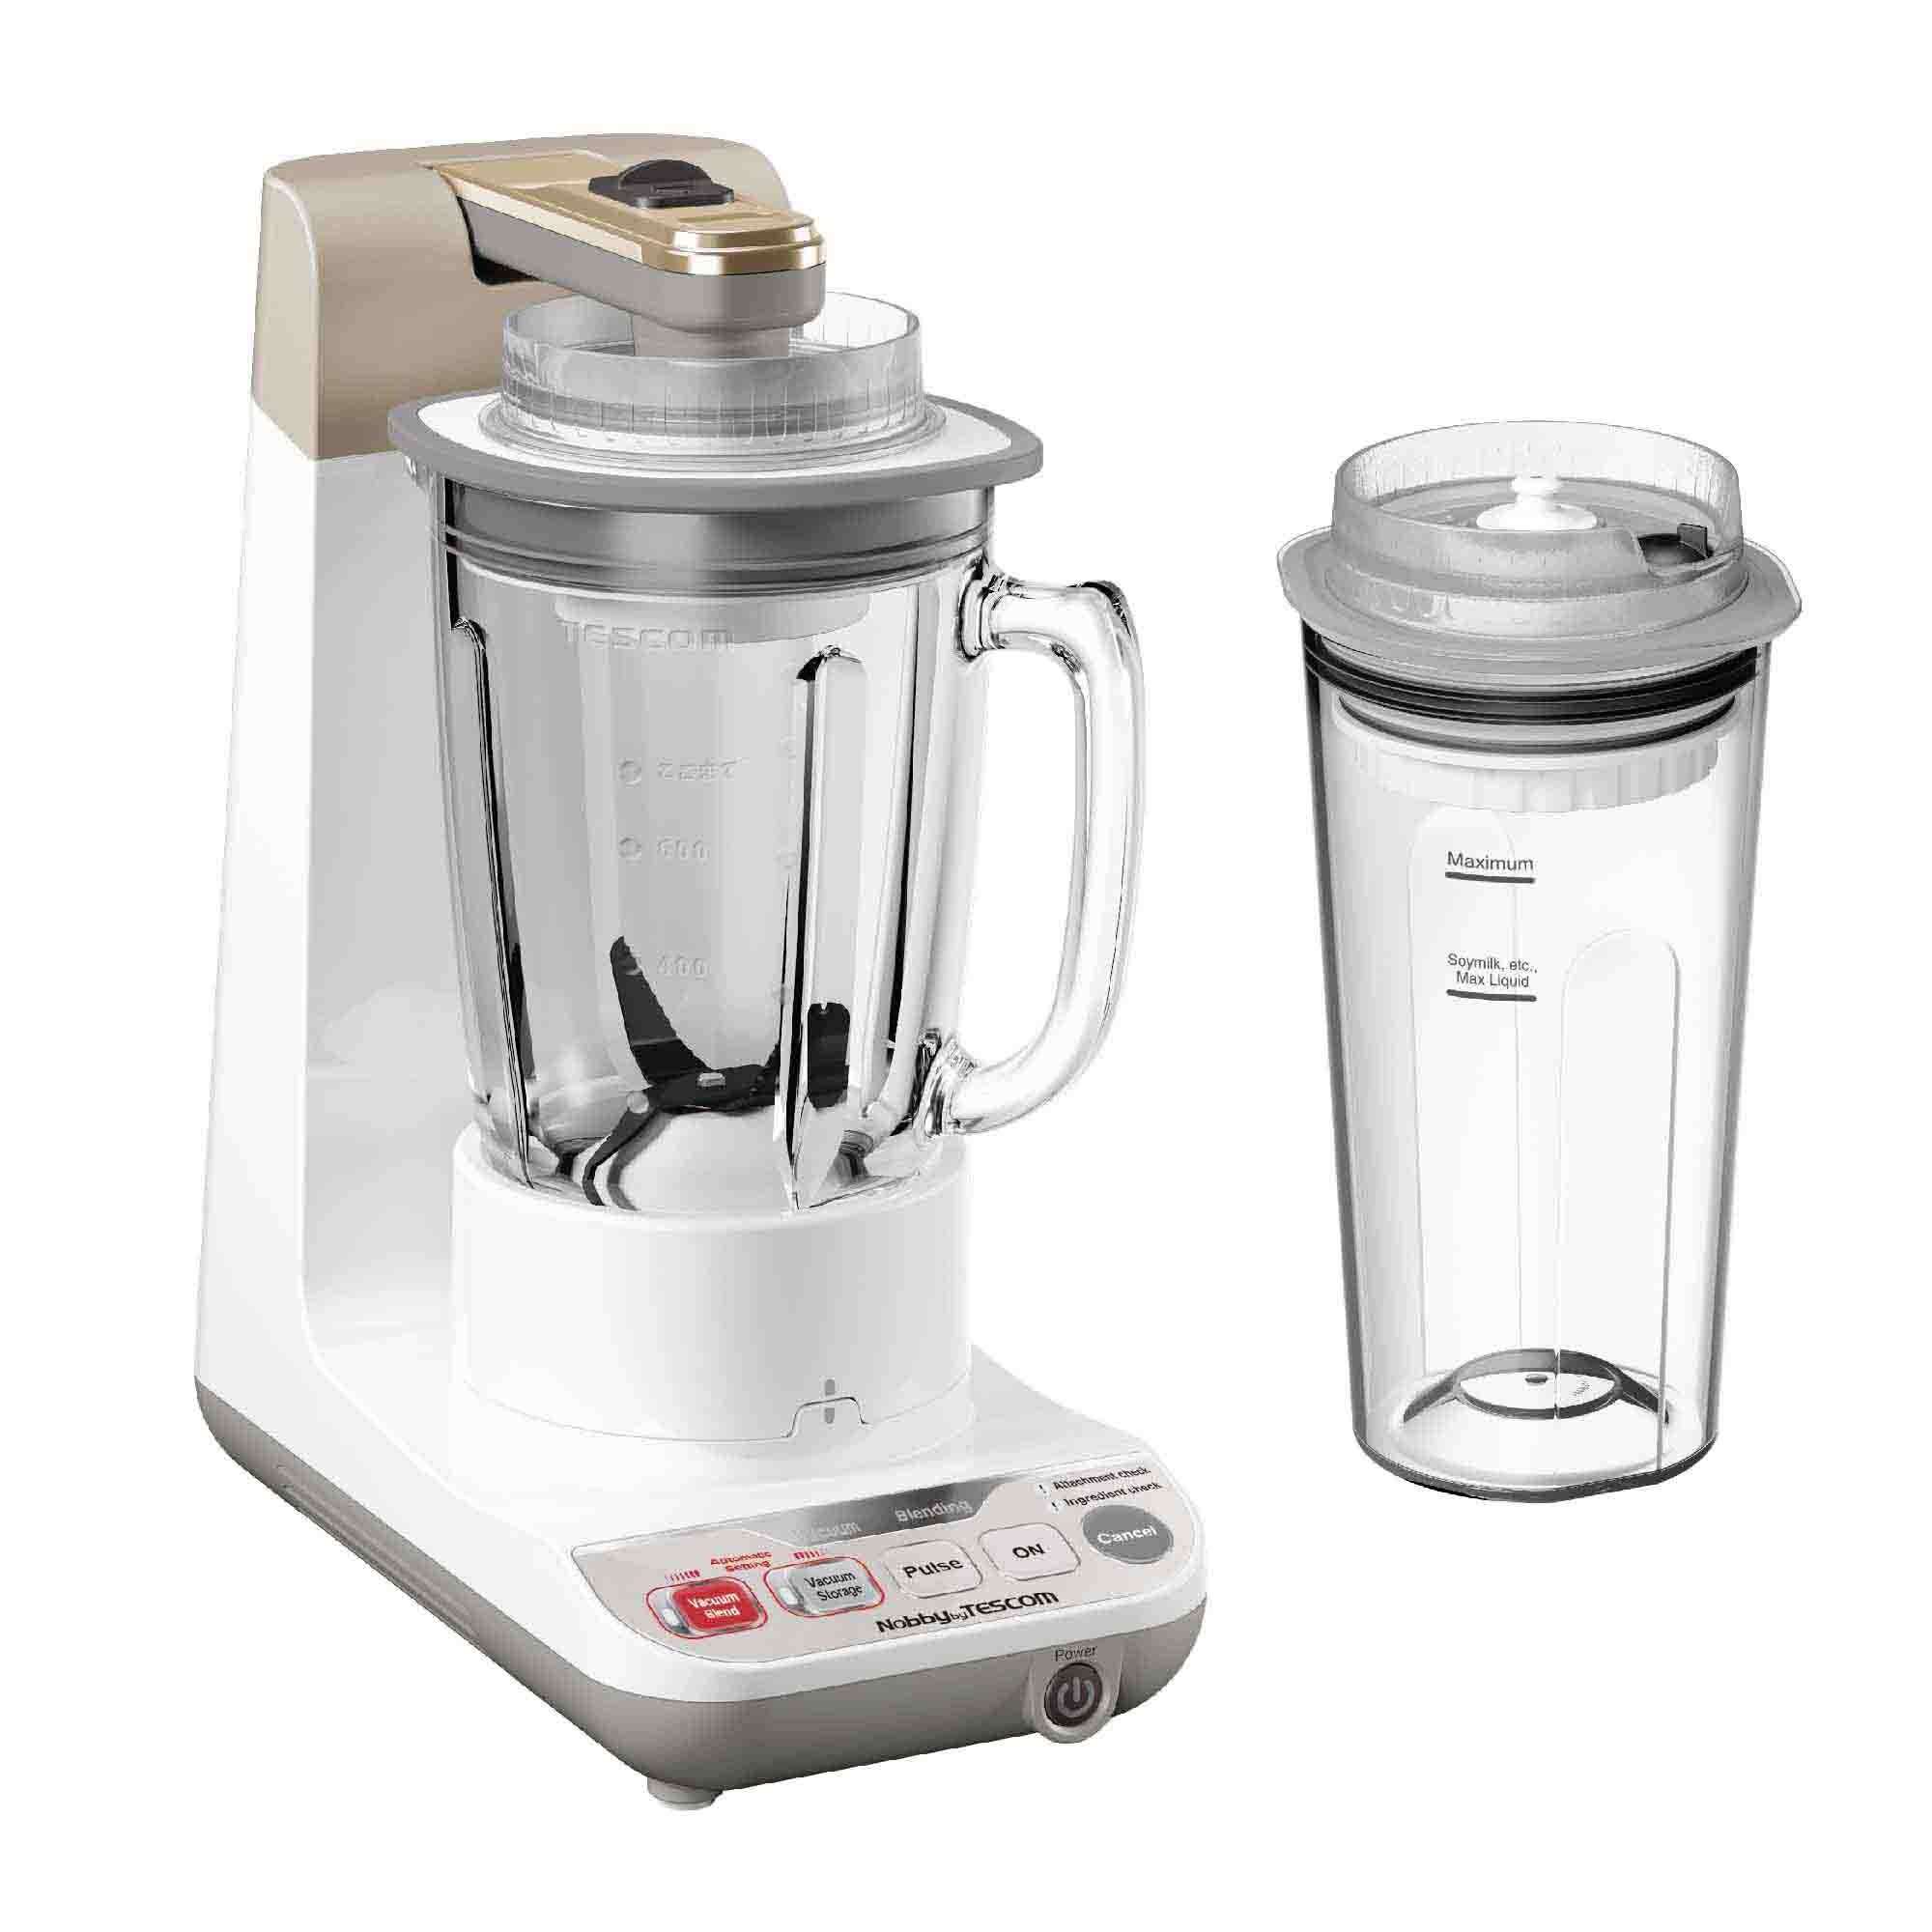 Tescom Vacuum Blender TMV1500SEA (300W) 780ml Glass Jar + Smoothie Con